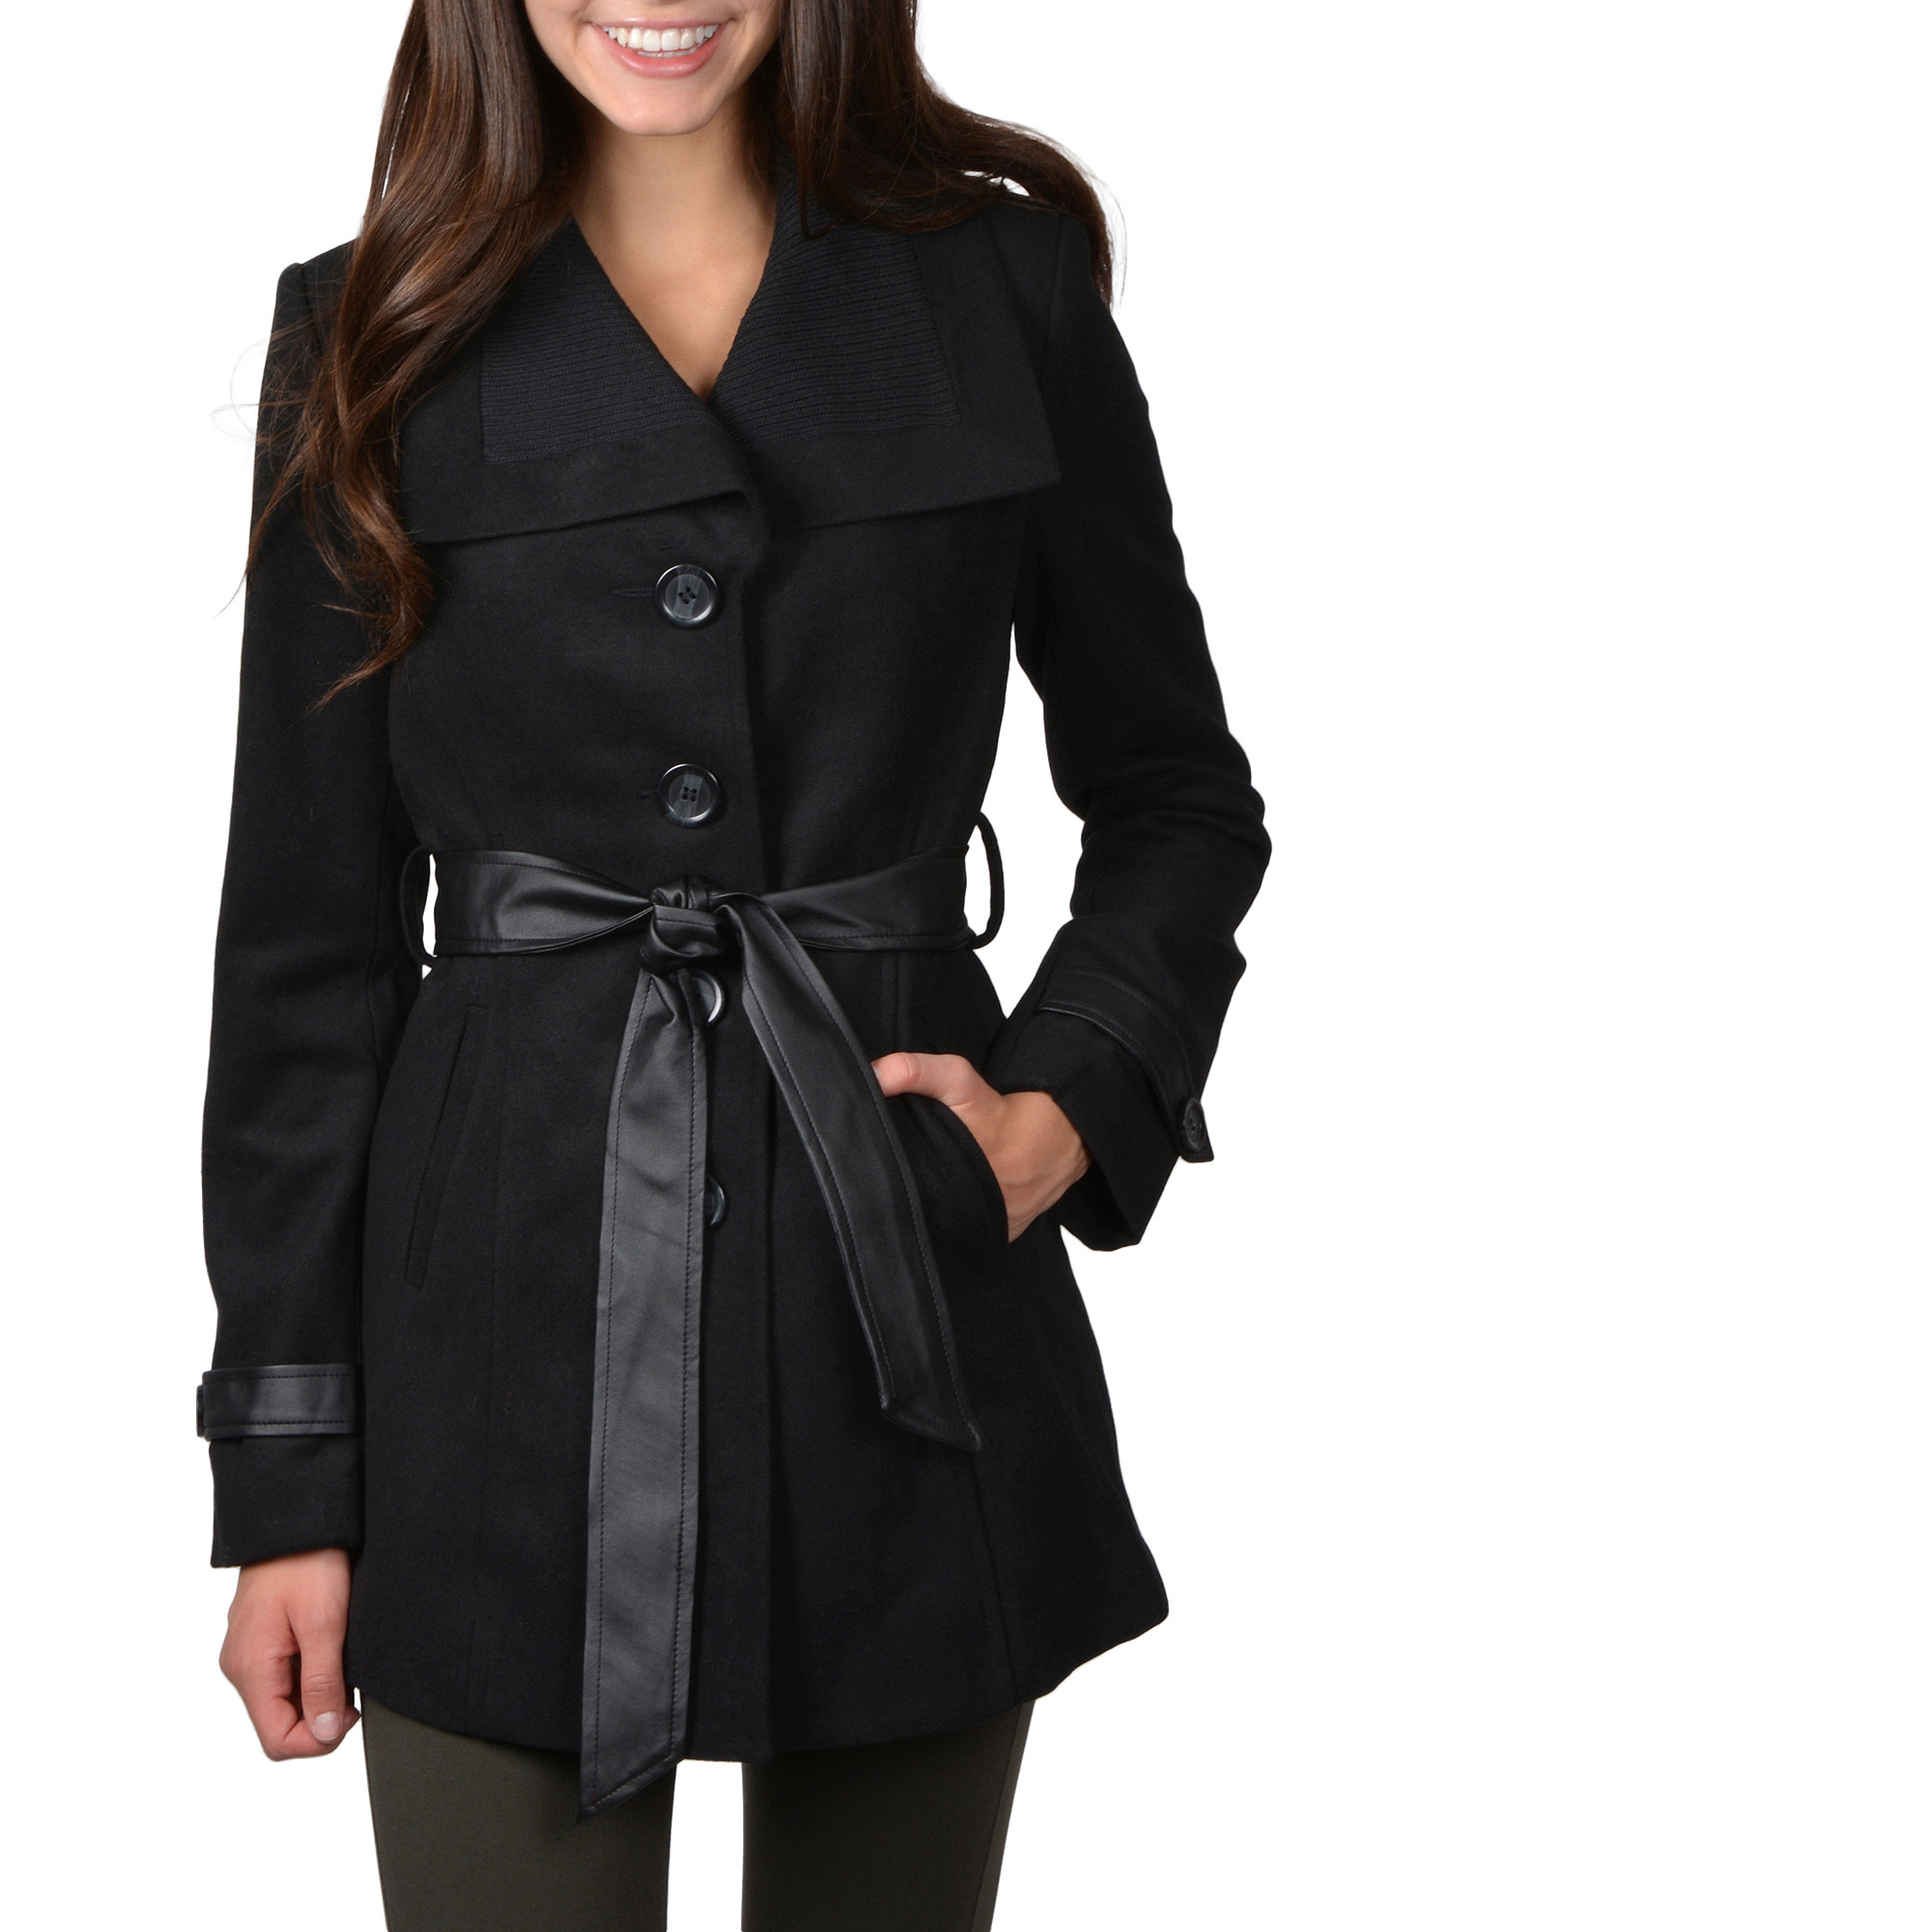 Brinley Co Juniors Belted Button-up Trench Coat